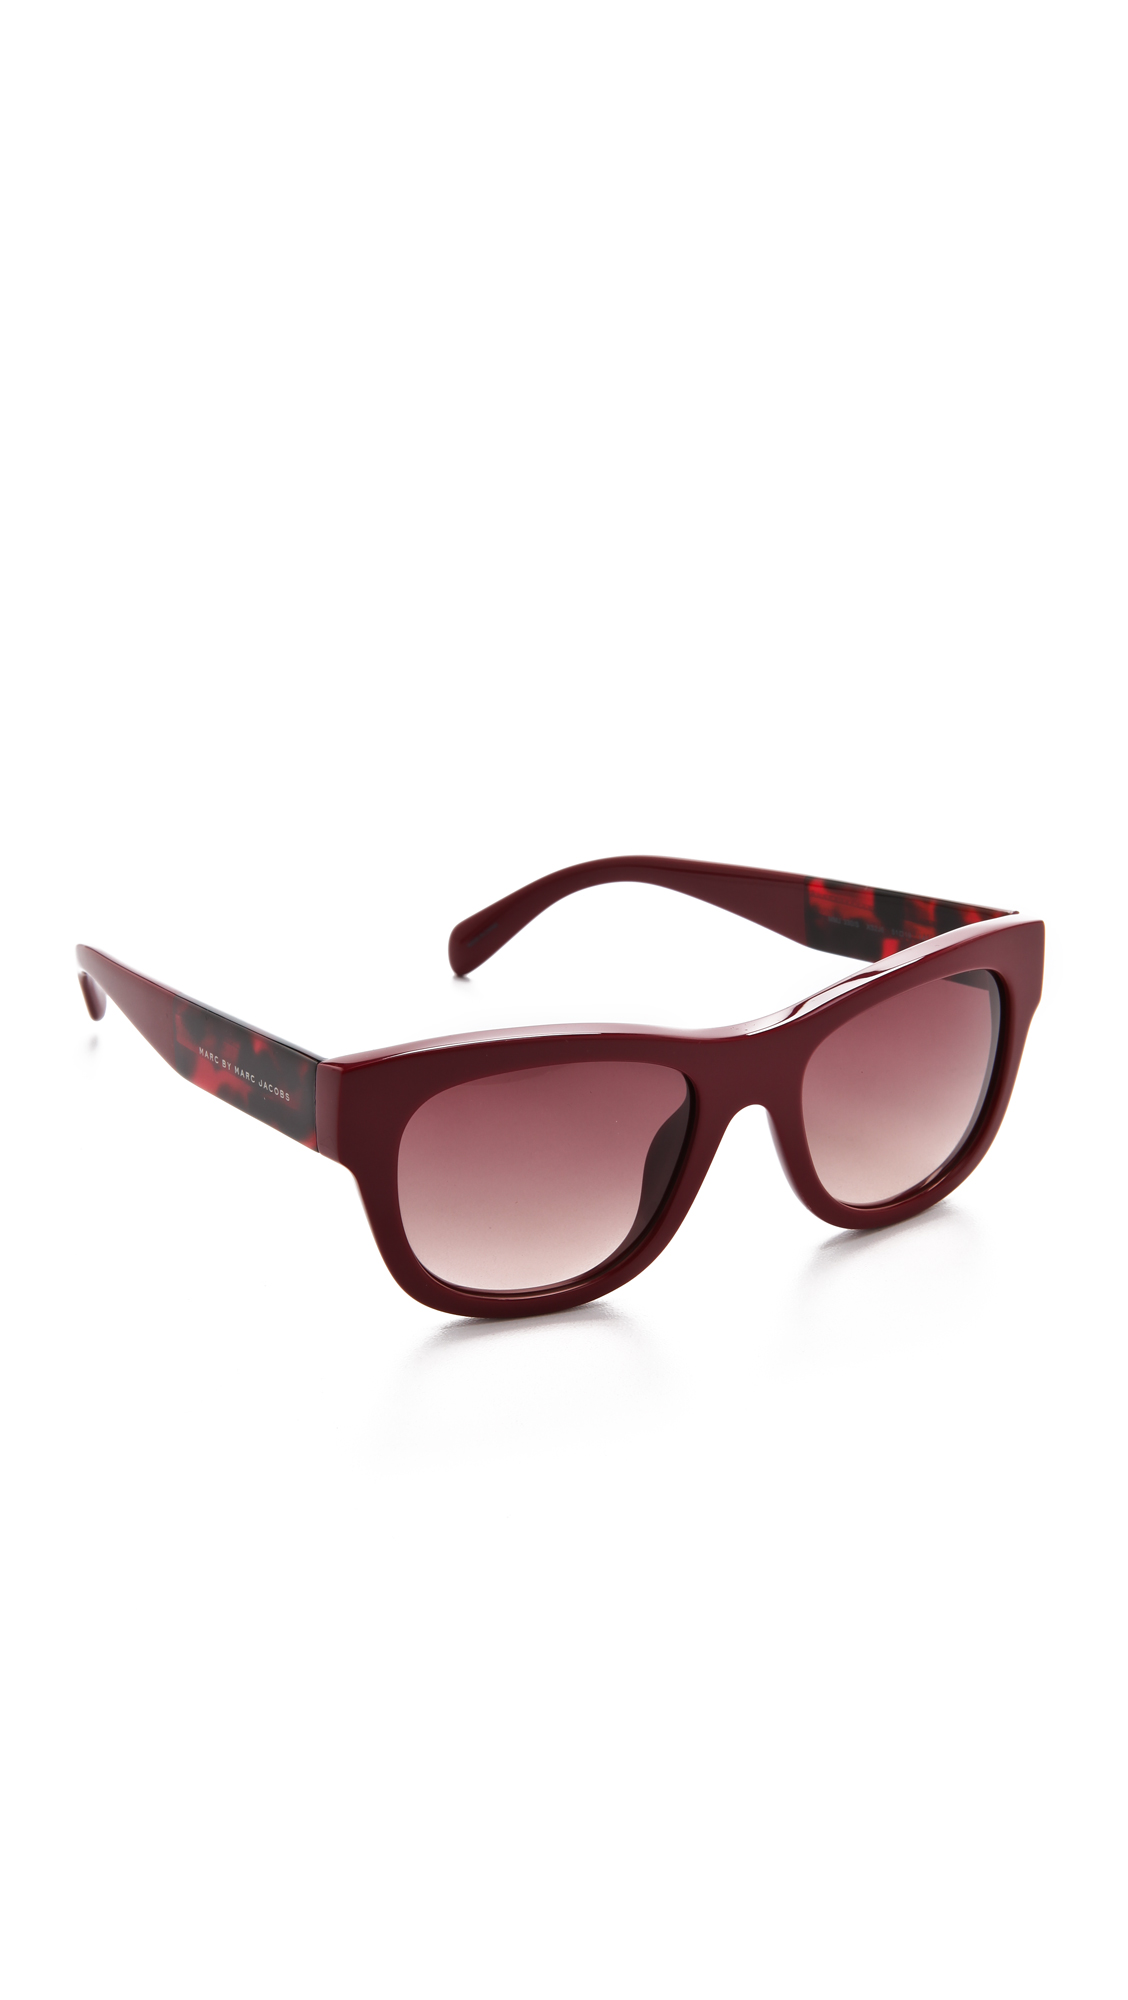 Frame Glasses Marc Jacobs : Marc by marc jacobs Thick Frame Sunglasses in Red Lyst